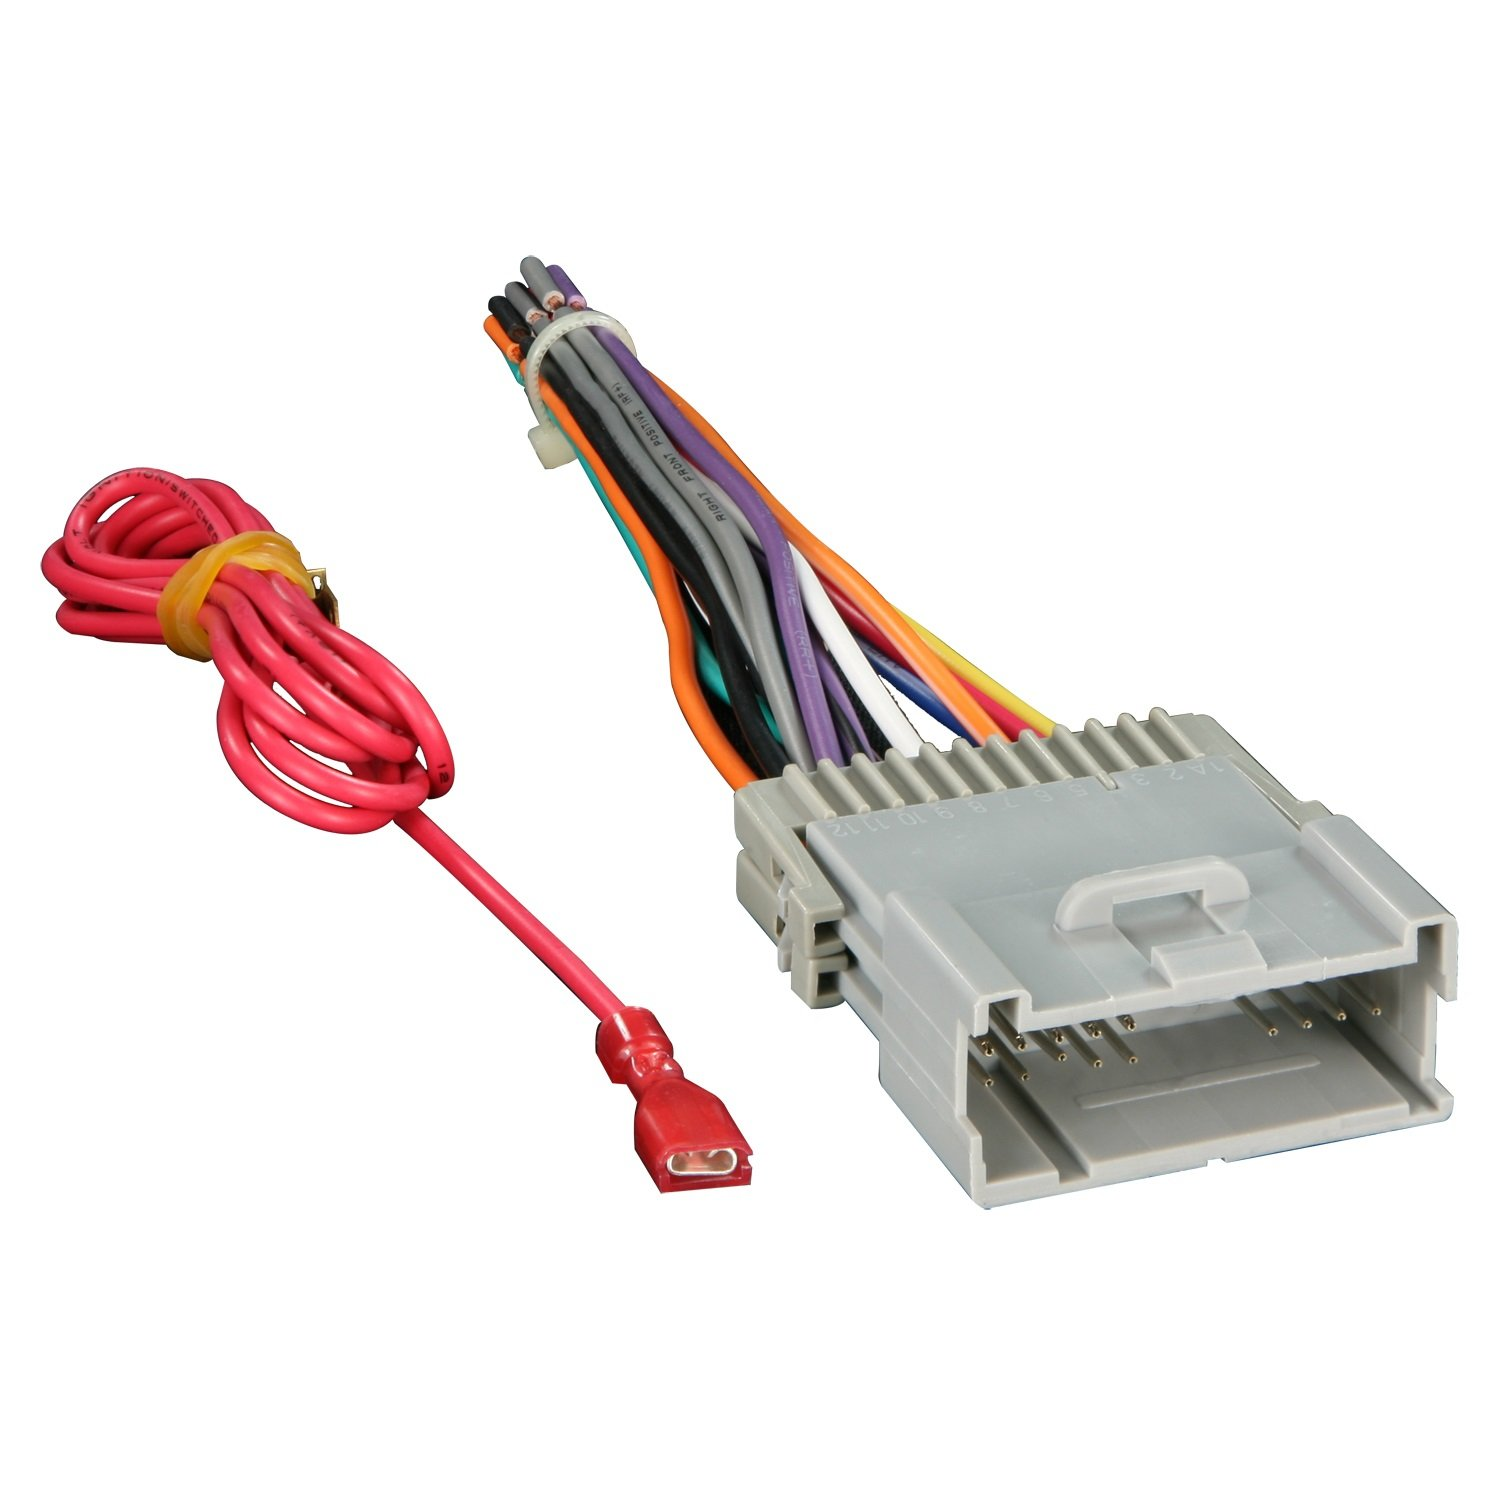 61eewxp9orL._SL1500_ amazon com metra 70 2003 radio wiring harness for gm 98 08 wire harness doesn't fit at creativeand.co